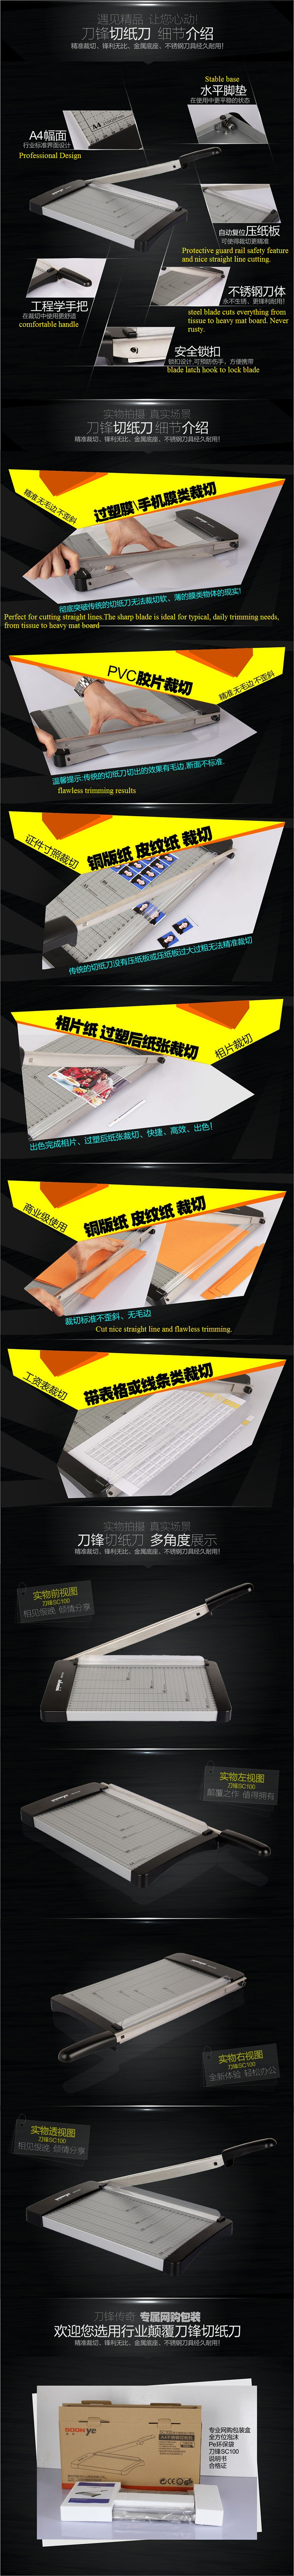 Stainless Steel A4 Paper Cutter Stationary